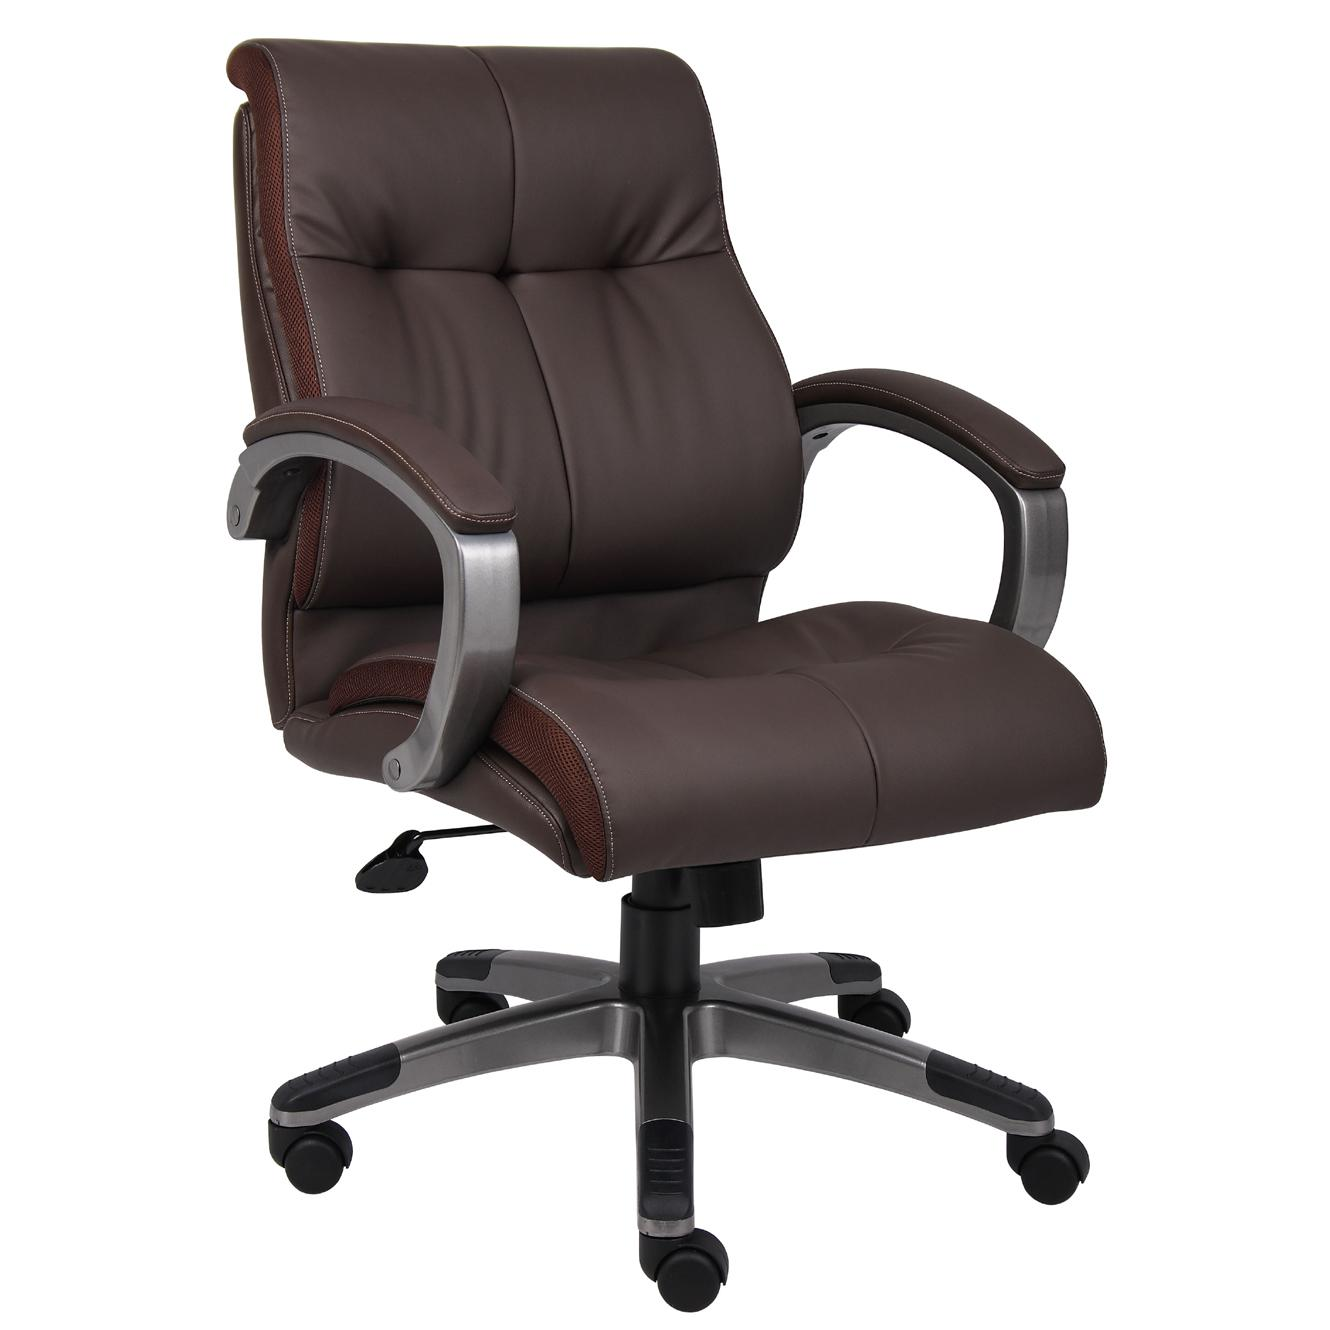 overstock com chairs brown executive office boss double plush mid back chair free shipping today